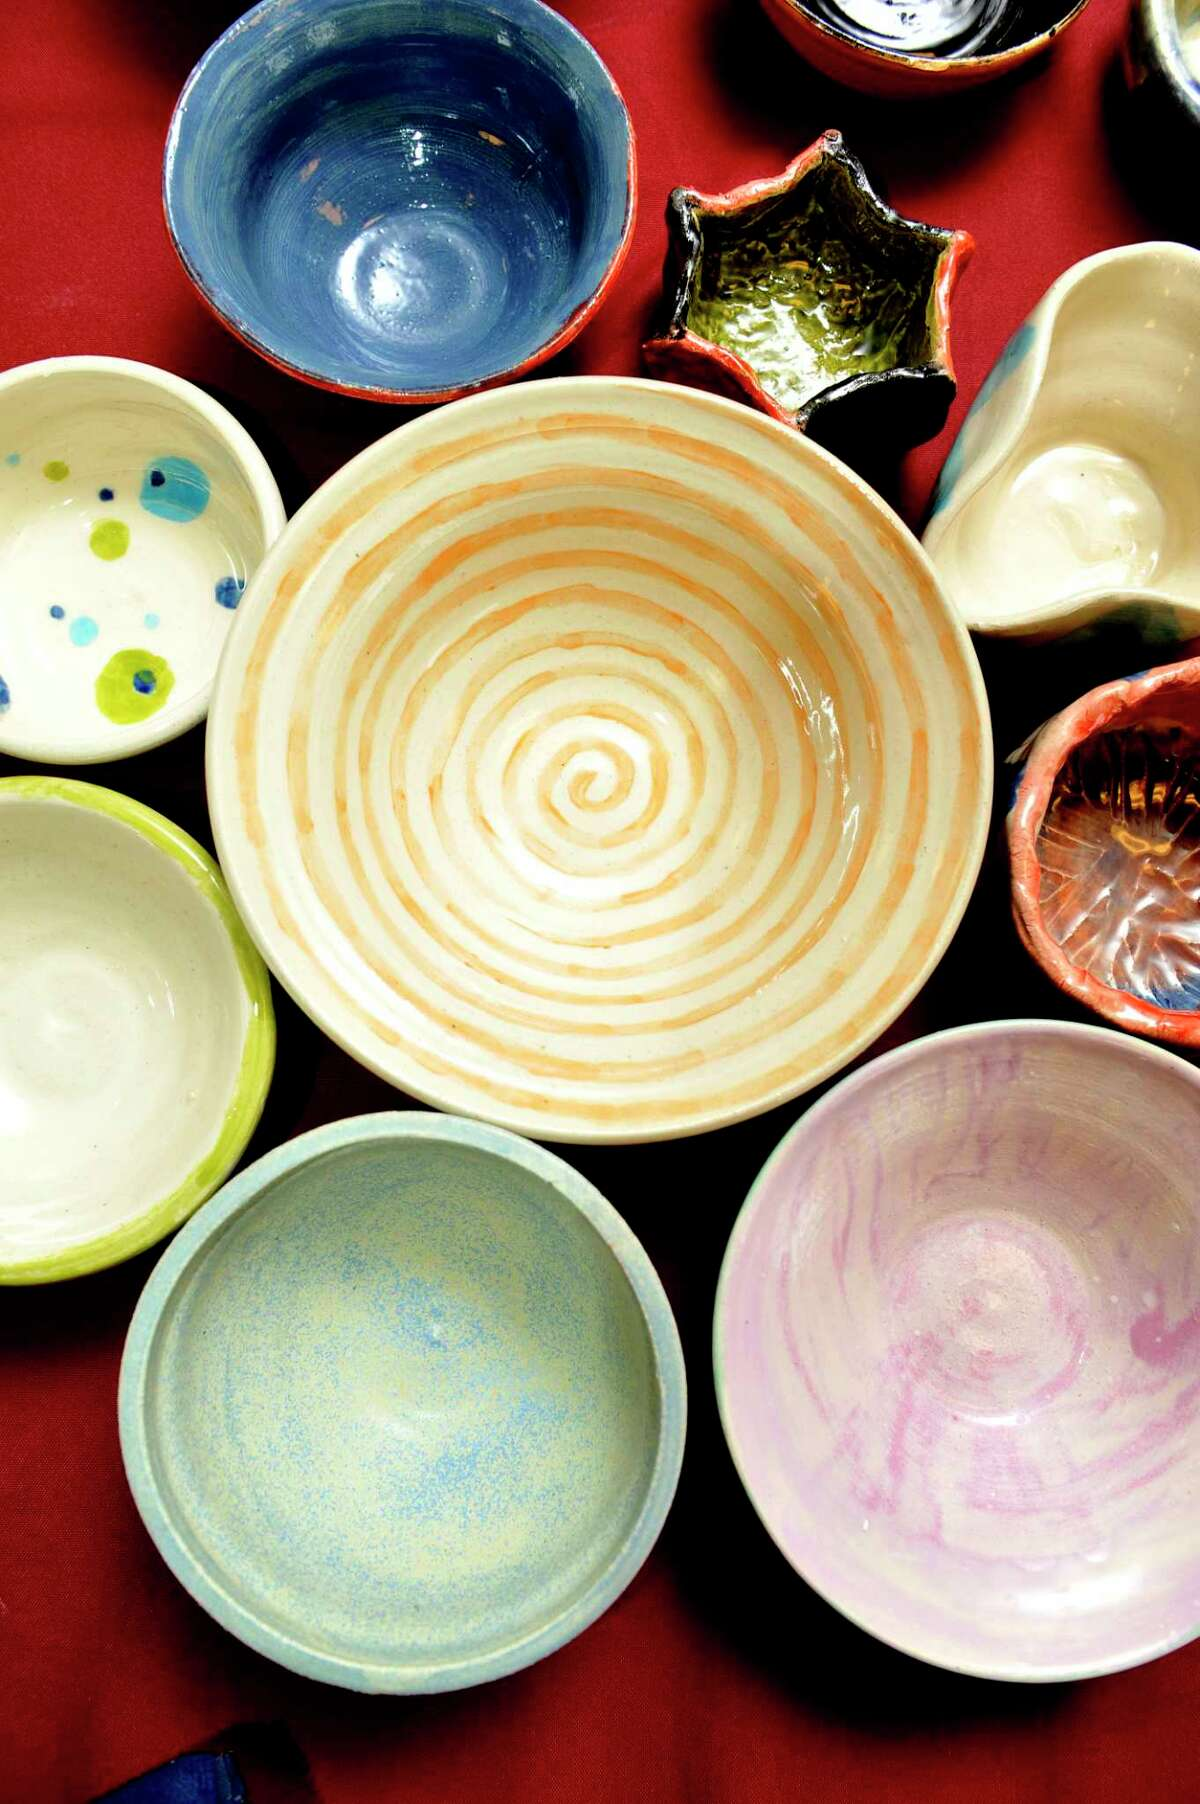 Empty Bowls, a fundraiser organized by the Collar City Clay Guild that over the past 15 years has raised more than $275,000 for food-relief programs in Troy by selling soup bowls made by local potters, will have its bowls available at a booth at the Troy Waterfront Farmers on three Saturdays: this weekend and Oct. 9 and 16.